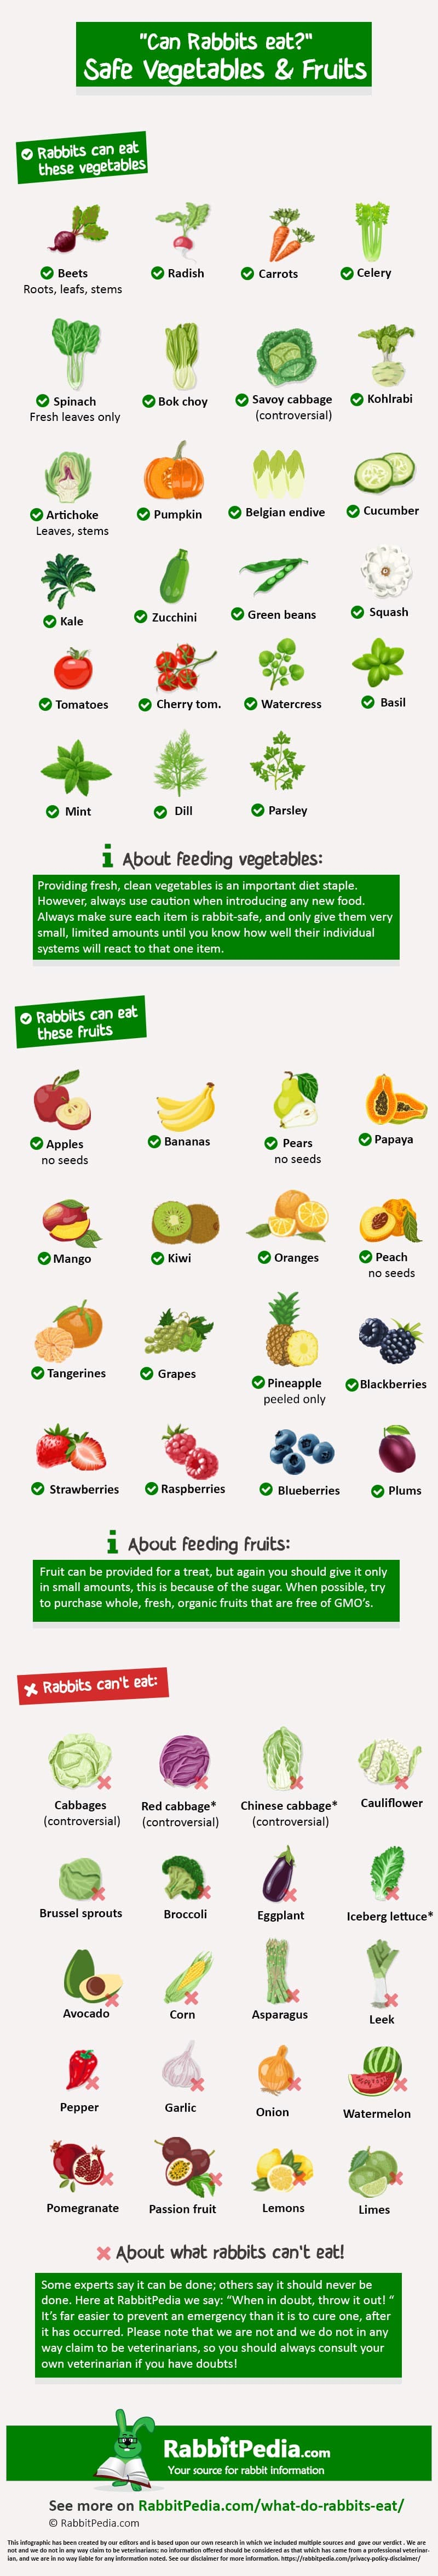 Safe vegetables and fruits for rabbits infographic